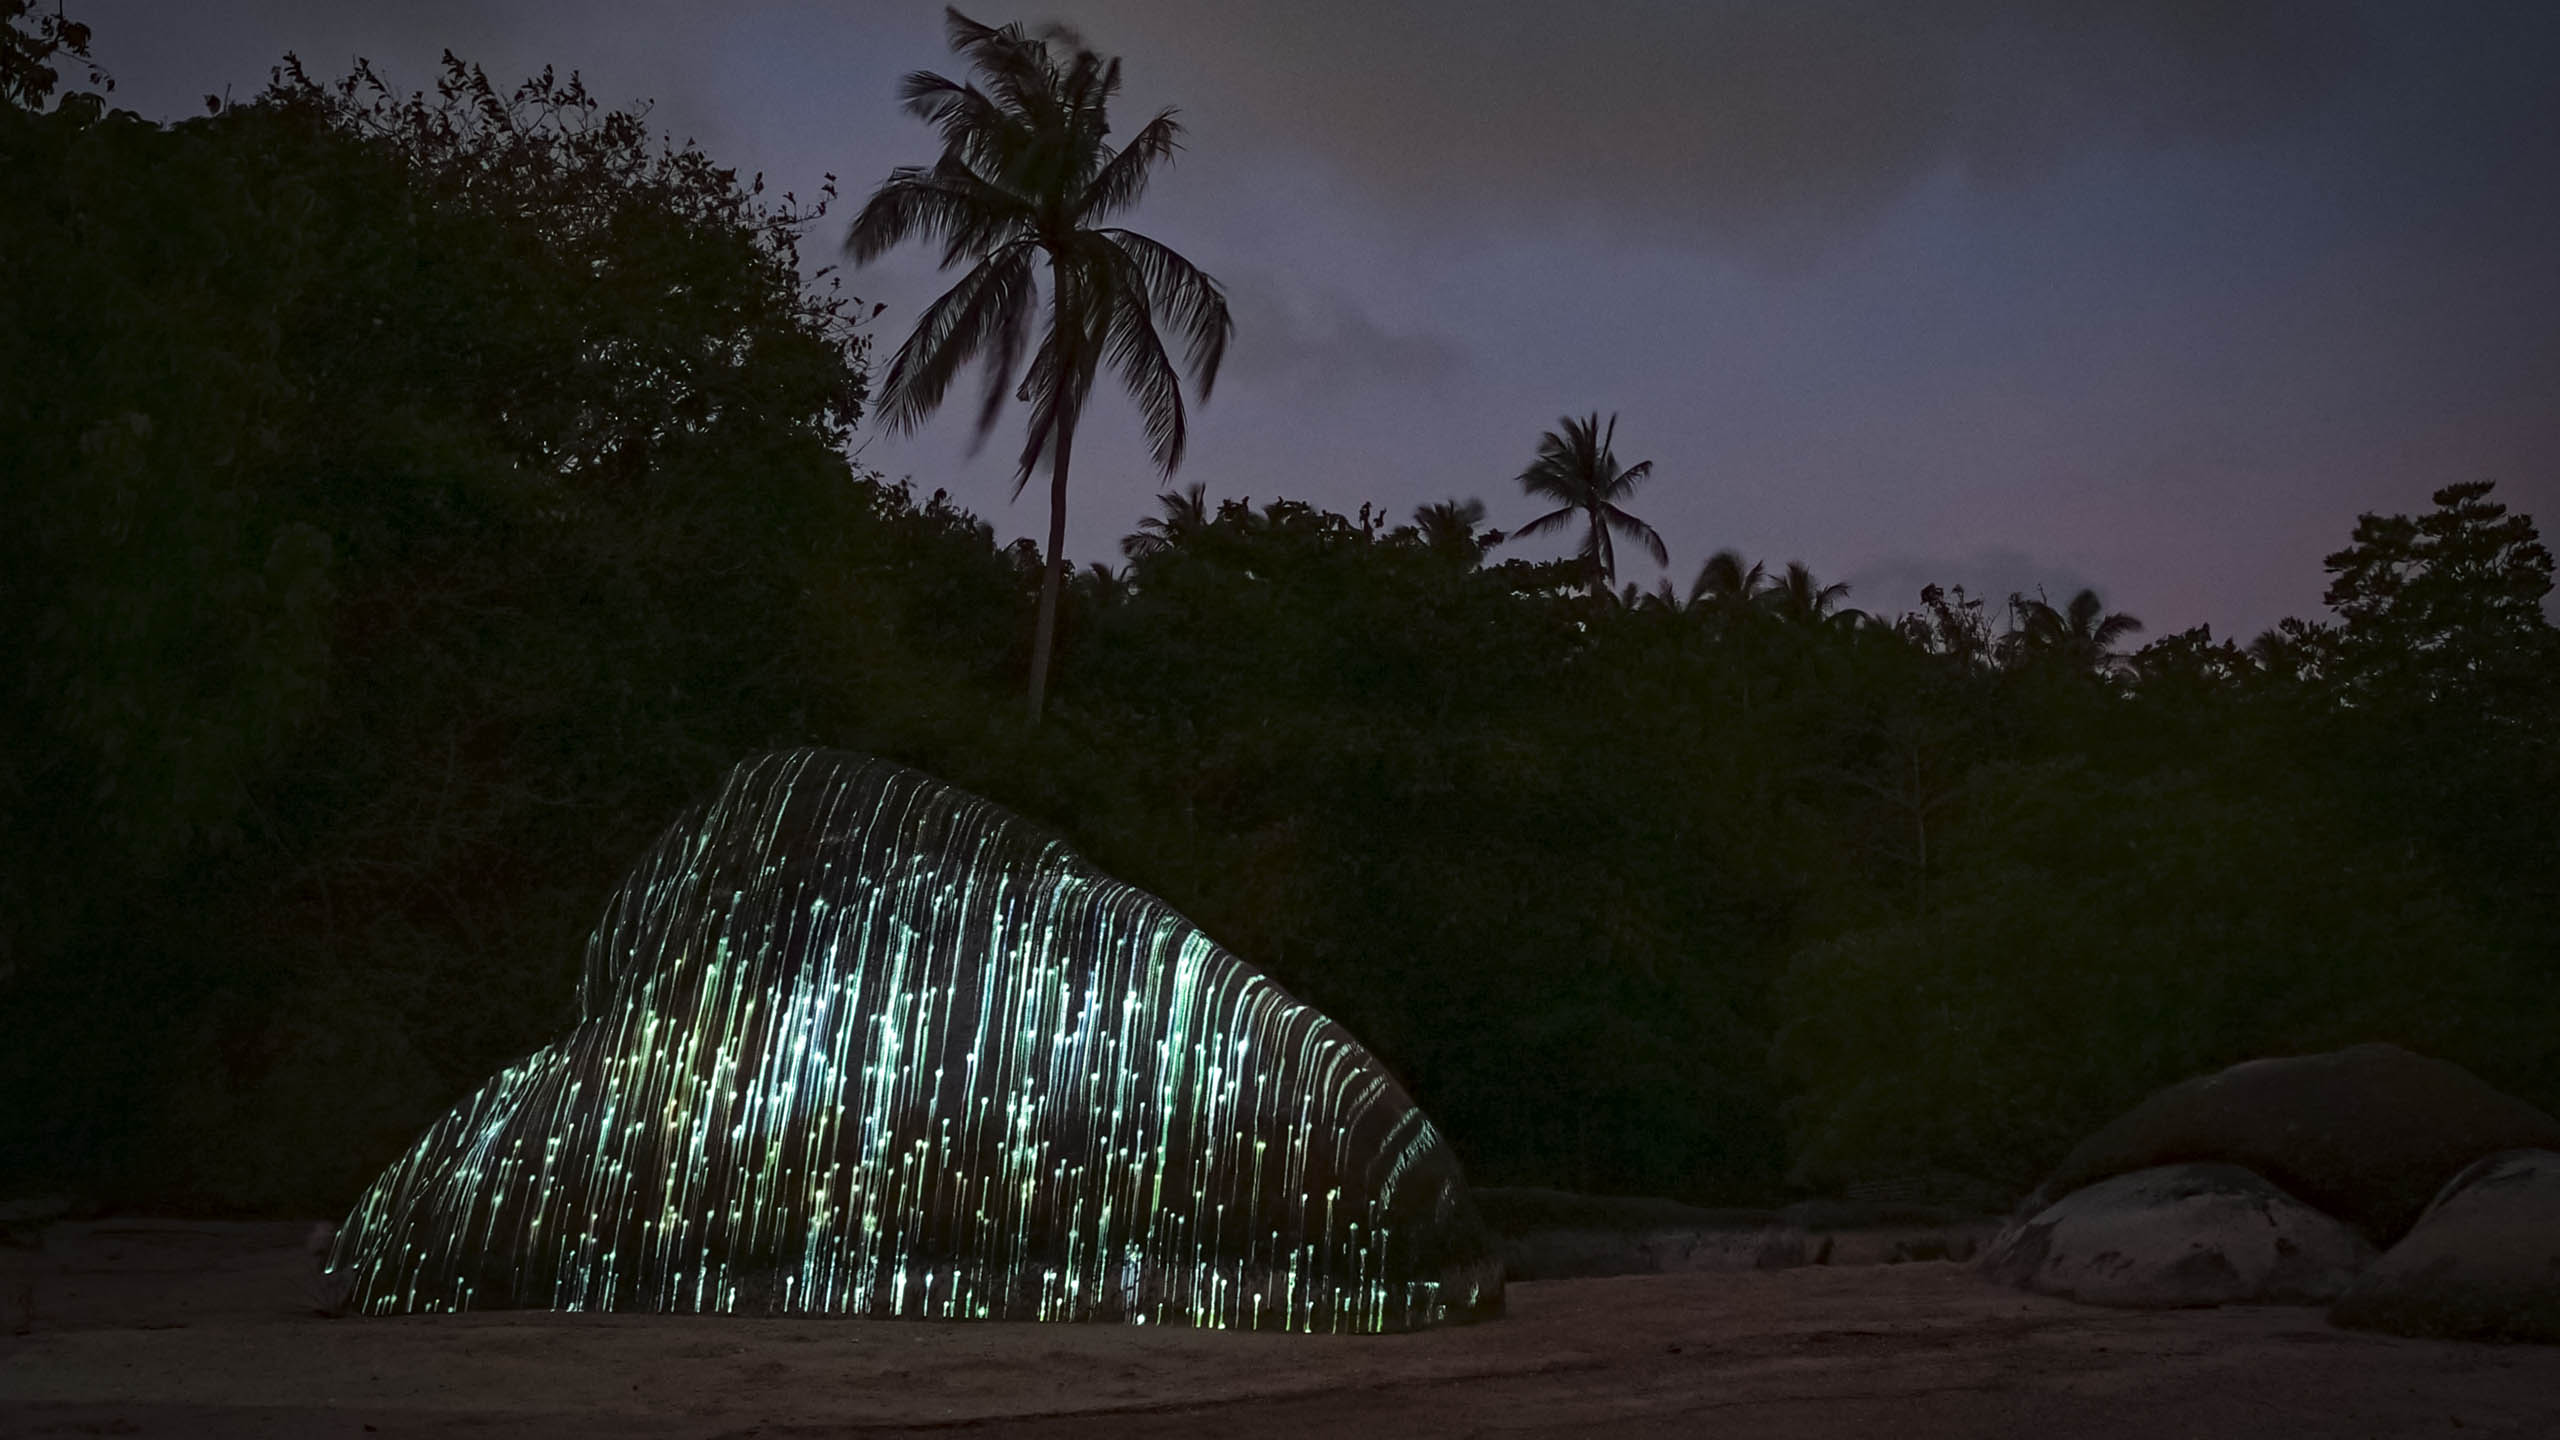 glitch light art, 3d projection mapping with graphic lines by philipp frank. Located on a rock at the beach